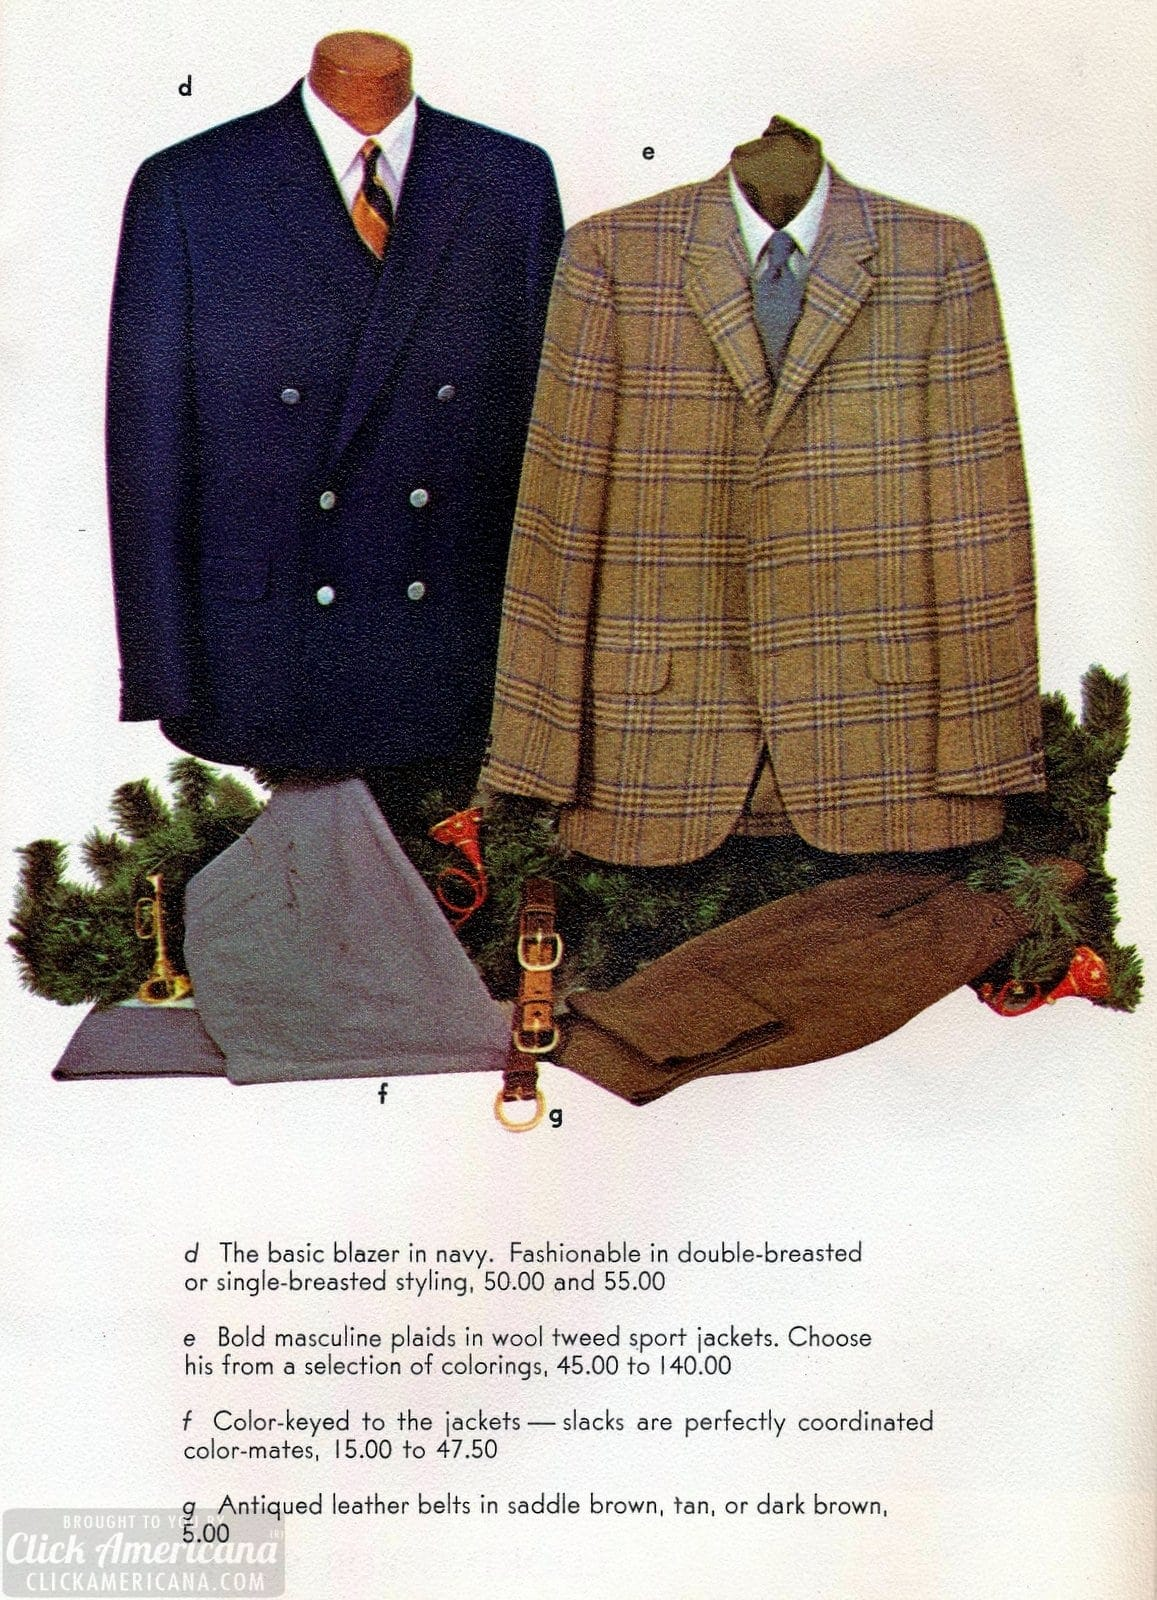 Vintage sports jackets and blazers for men - plus matching slacks